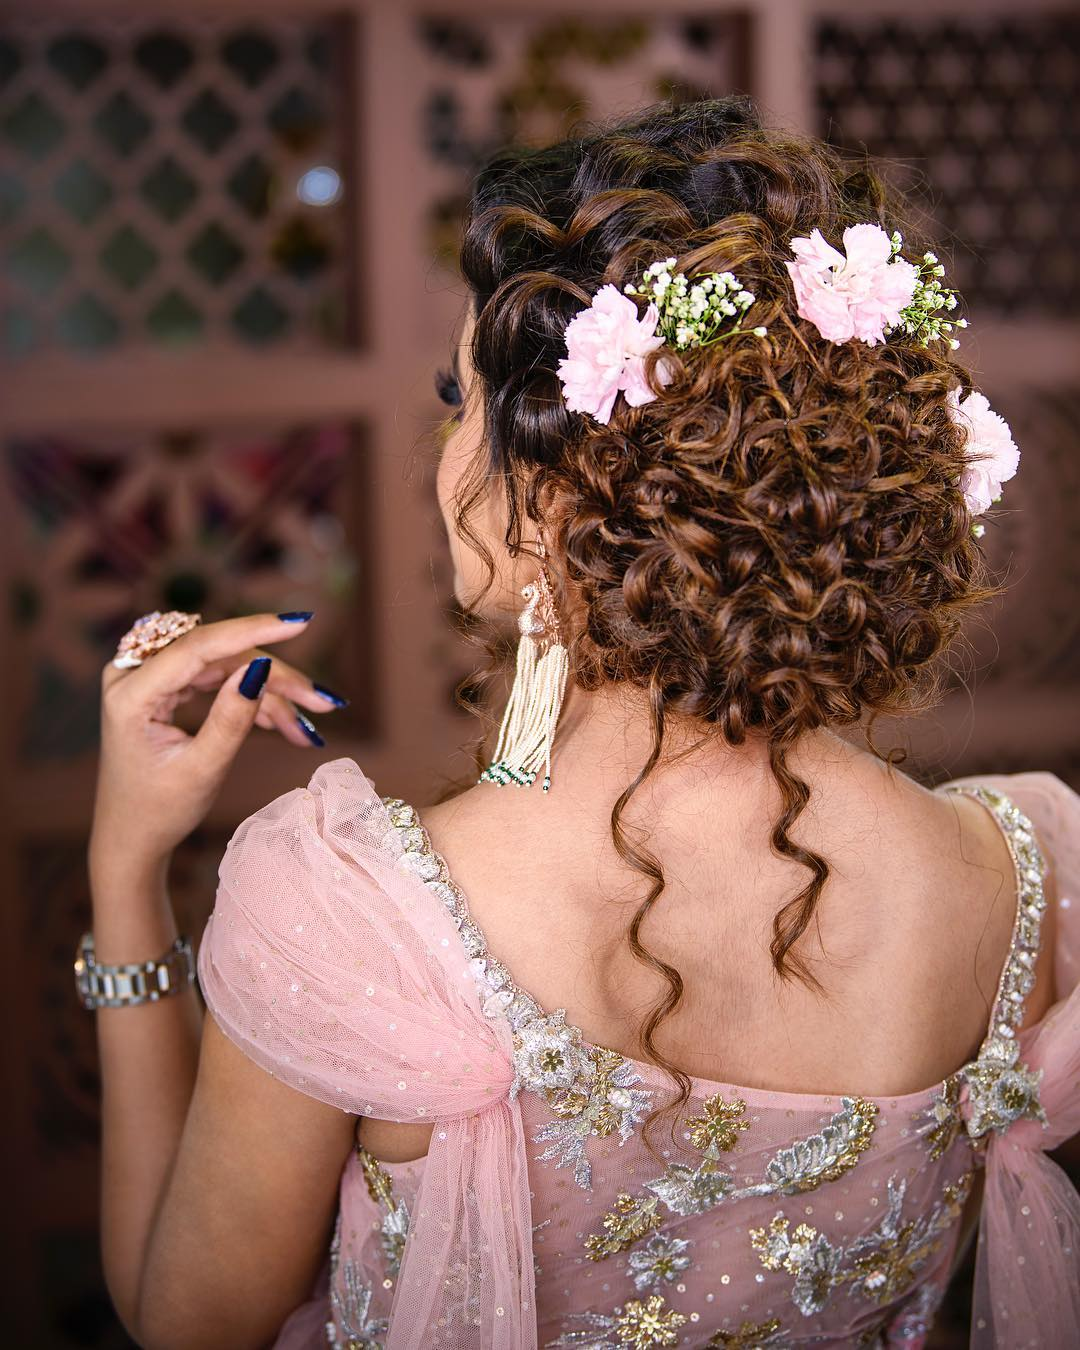 Bun with curls: Trending Bun Hairstyles for your Wedding Reception